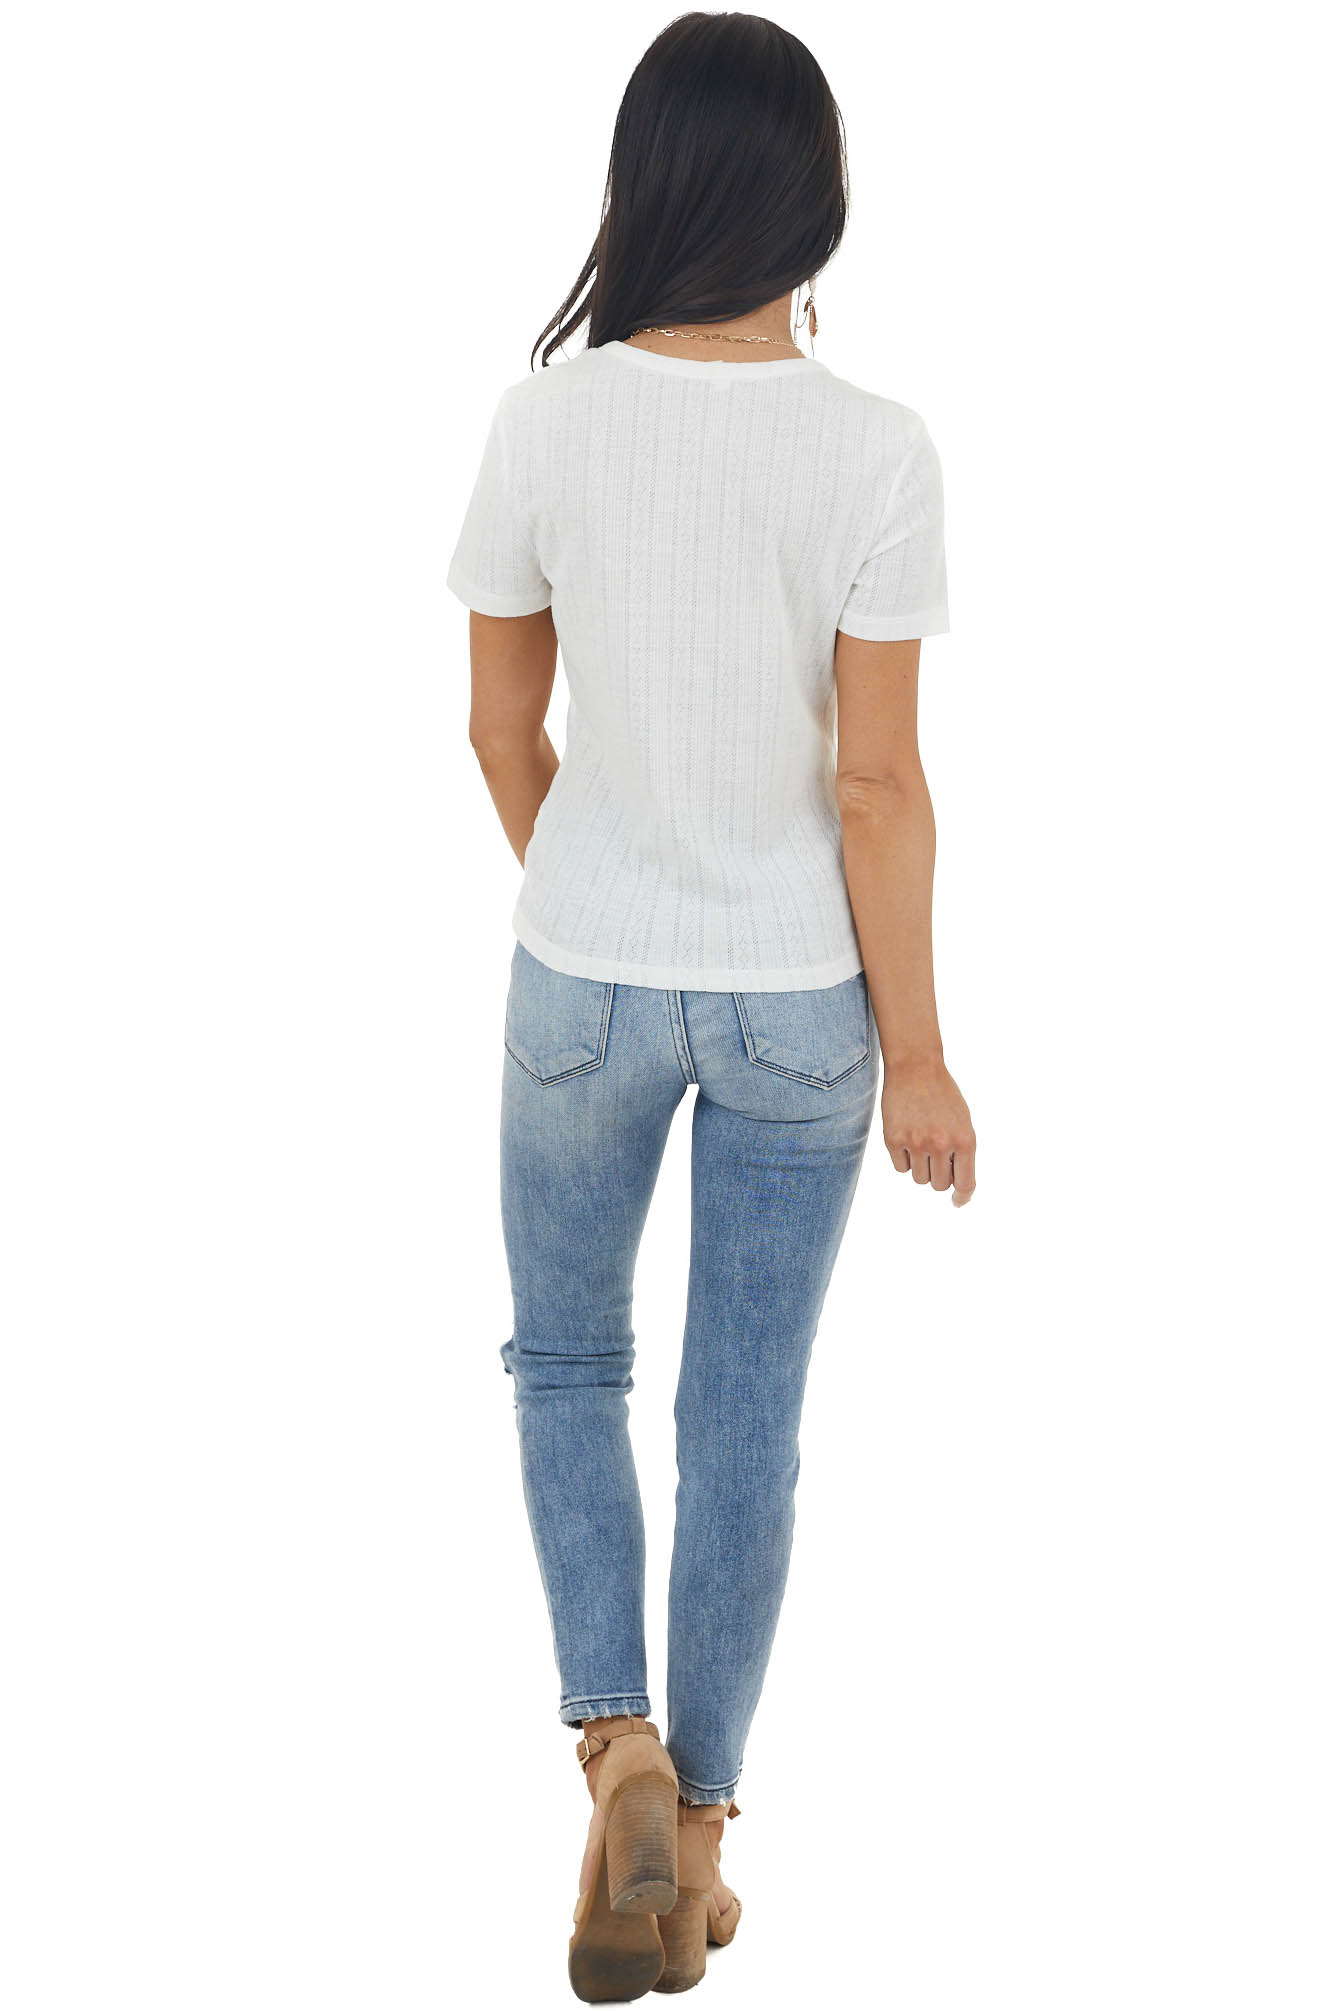 Ivory Textured Stretchy Knit Short Sleeve Henley Top